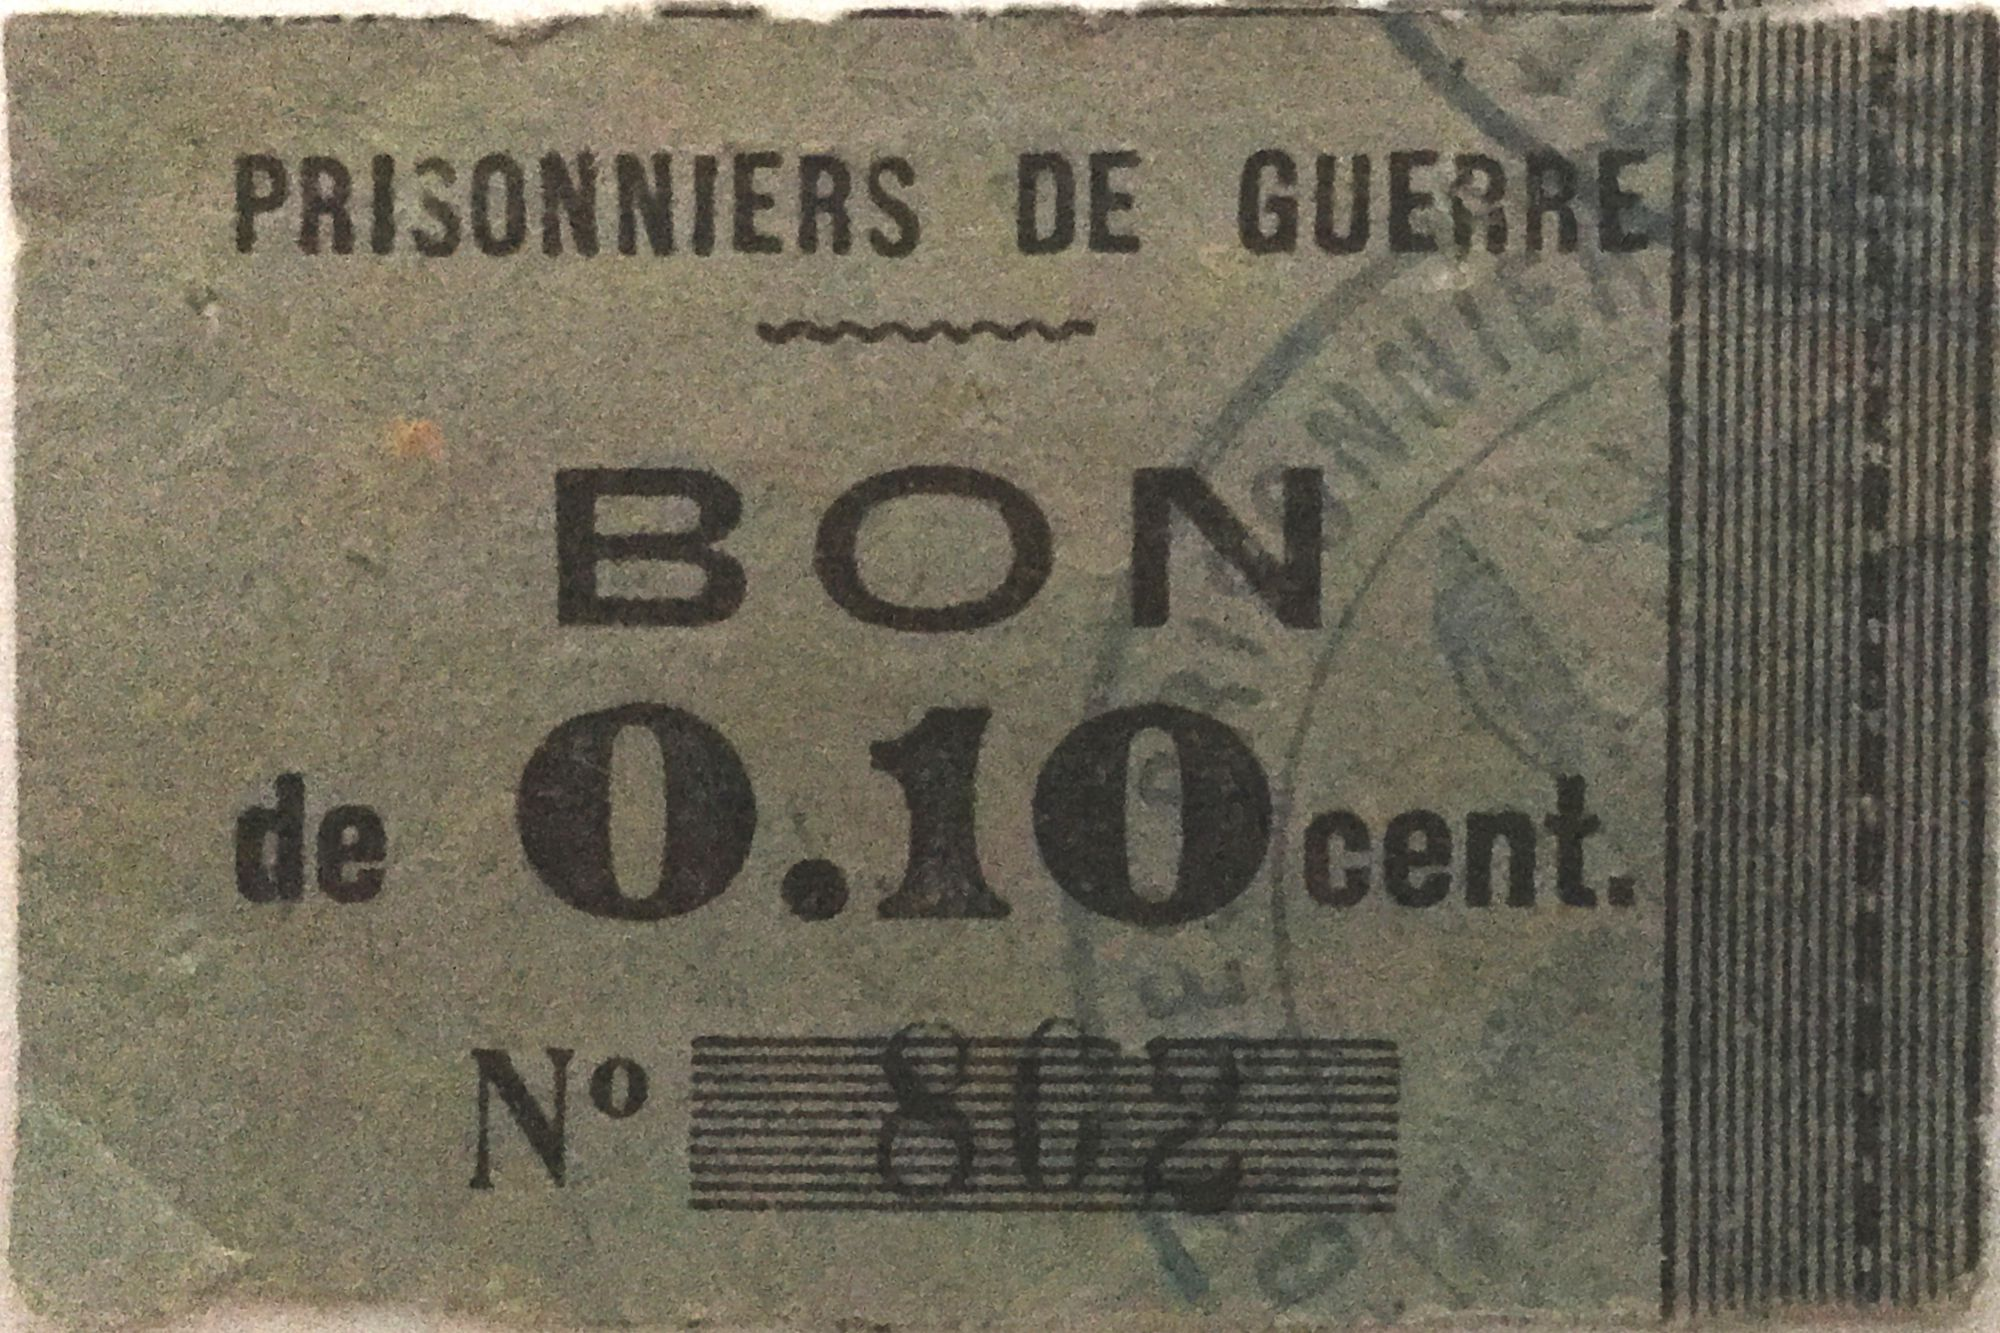 France 10 Centimes - WWI Prisoners Coupon - F